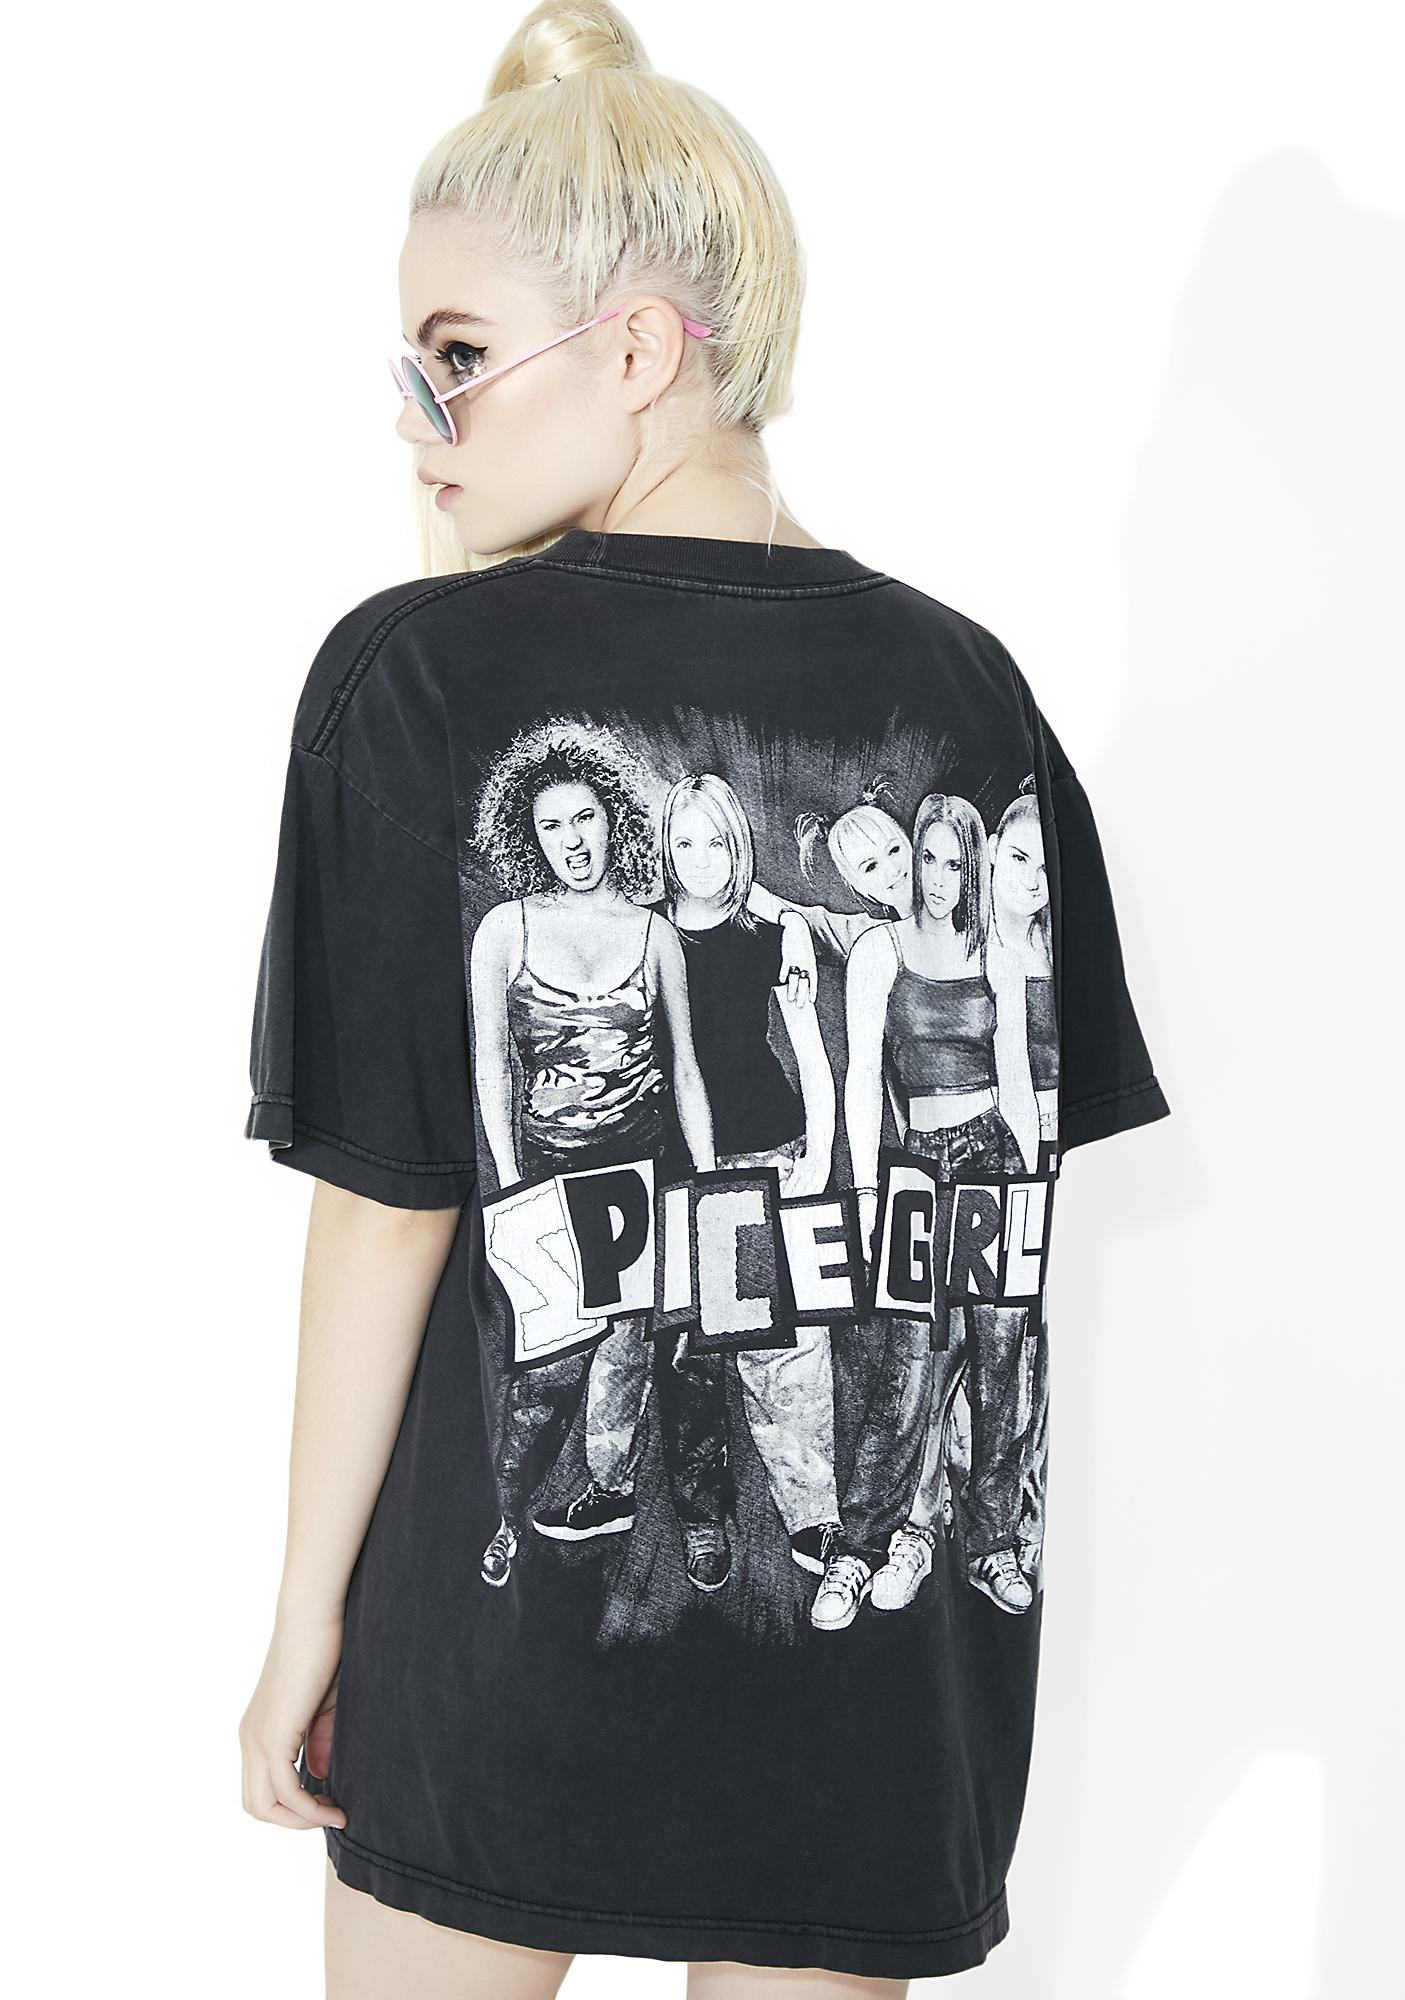 Vintage Spice Girls T-Shirt